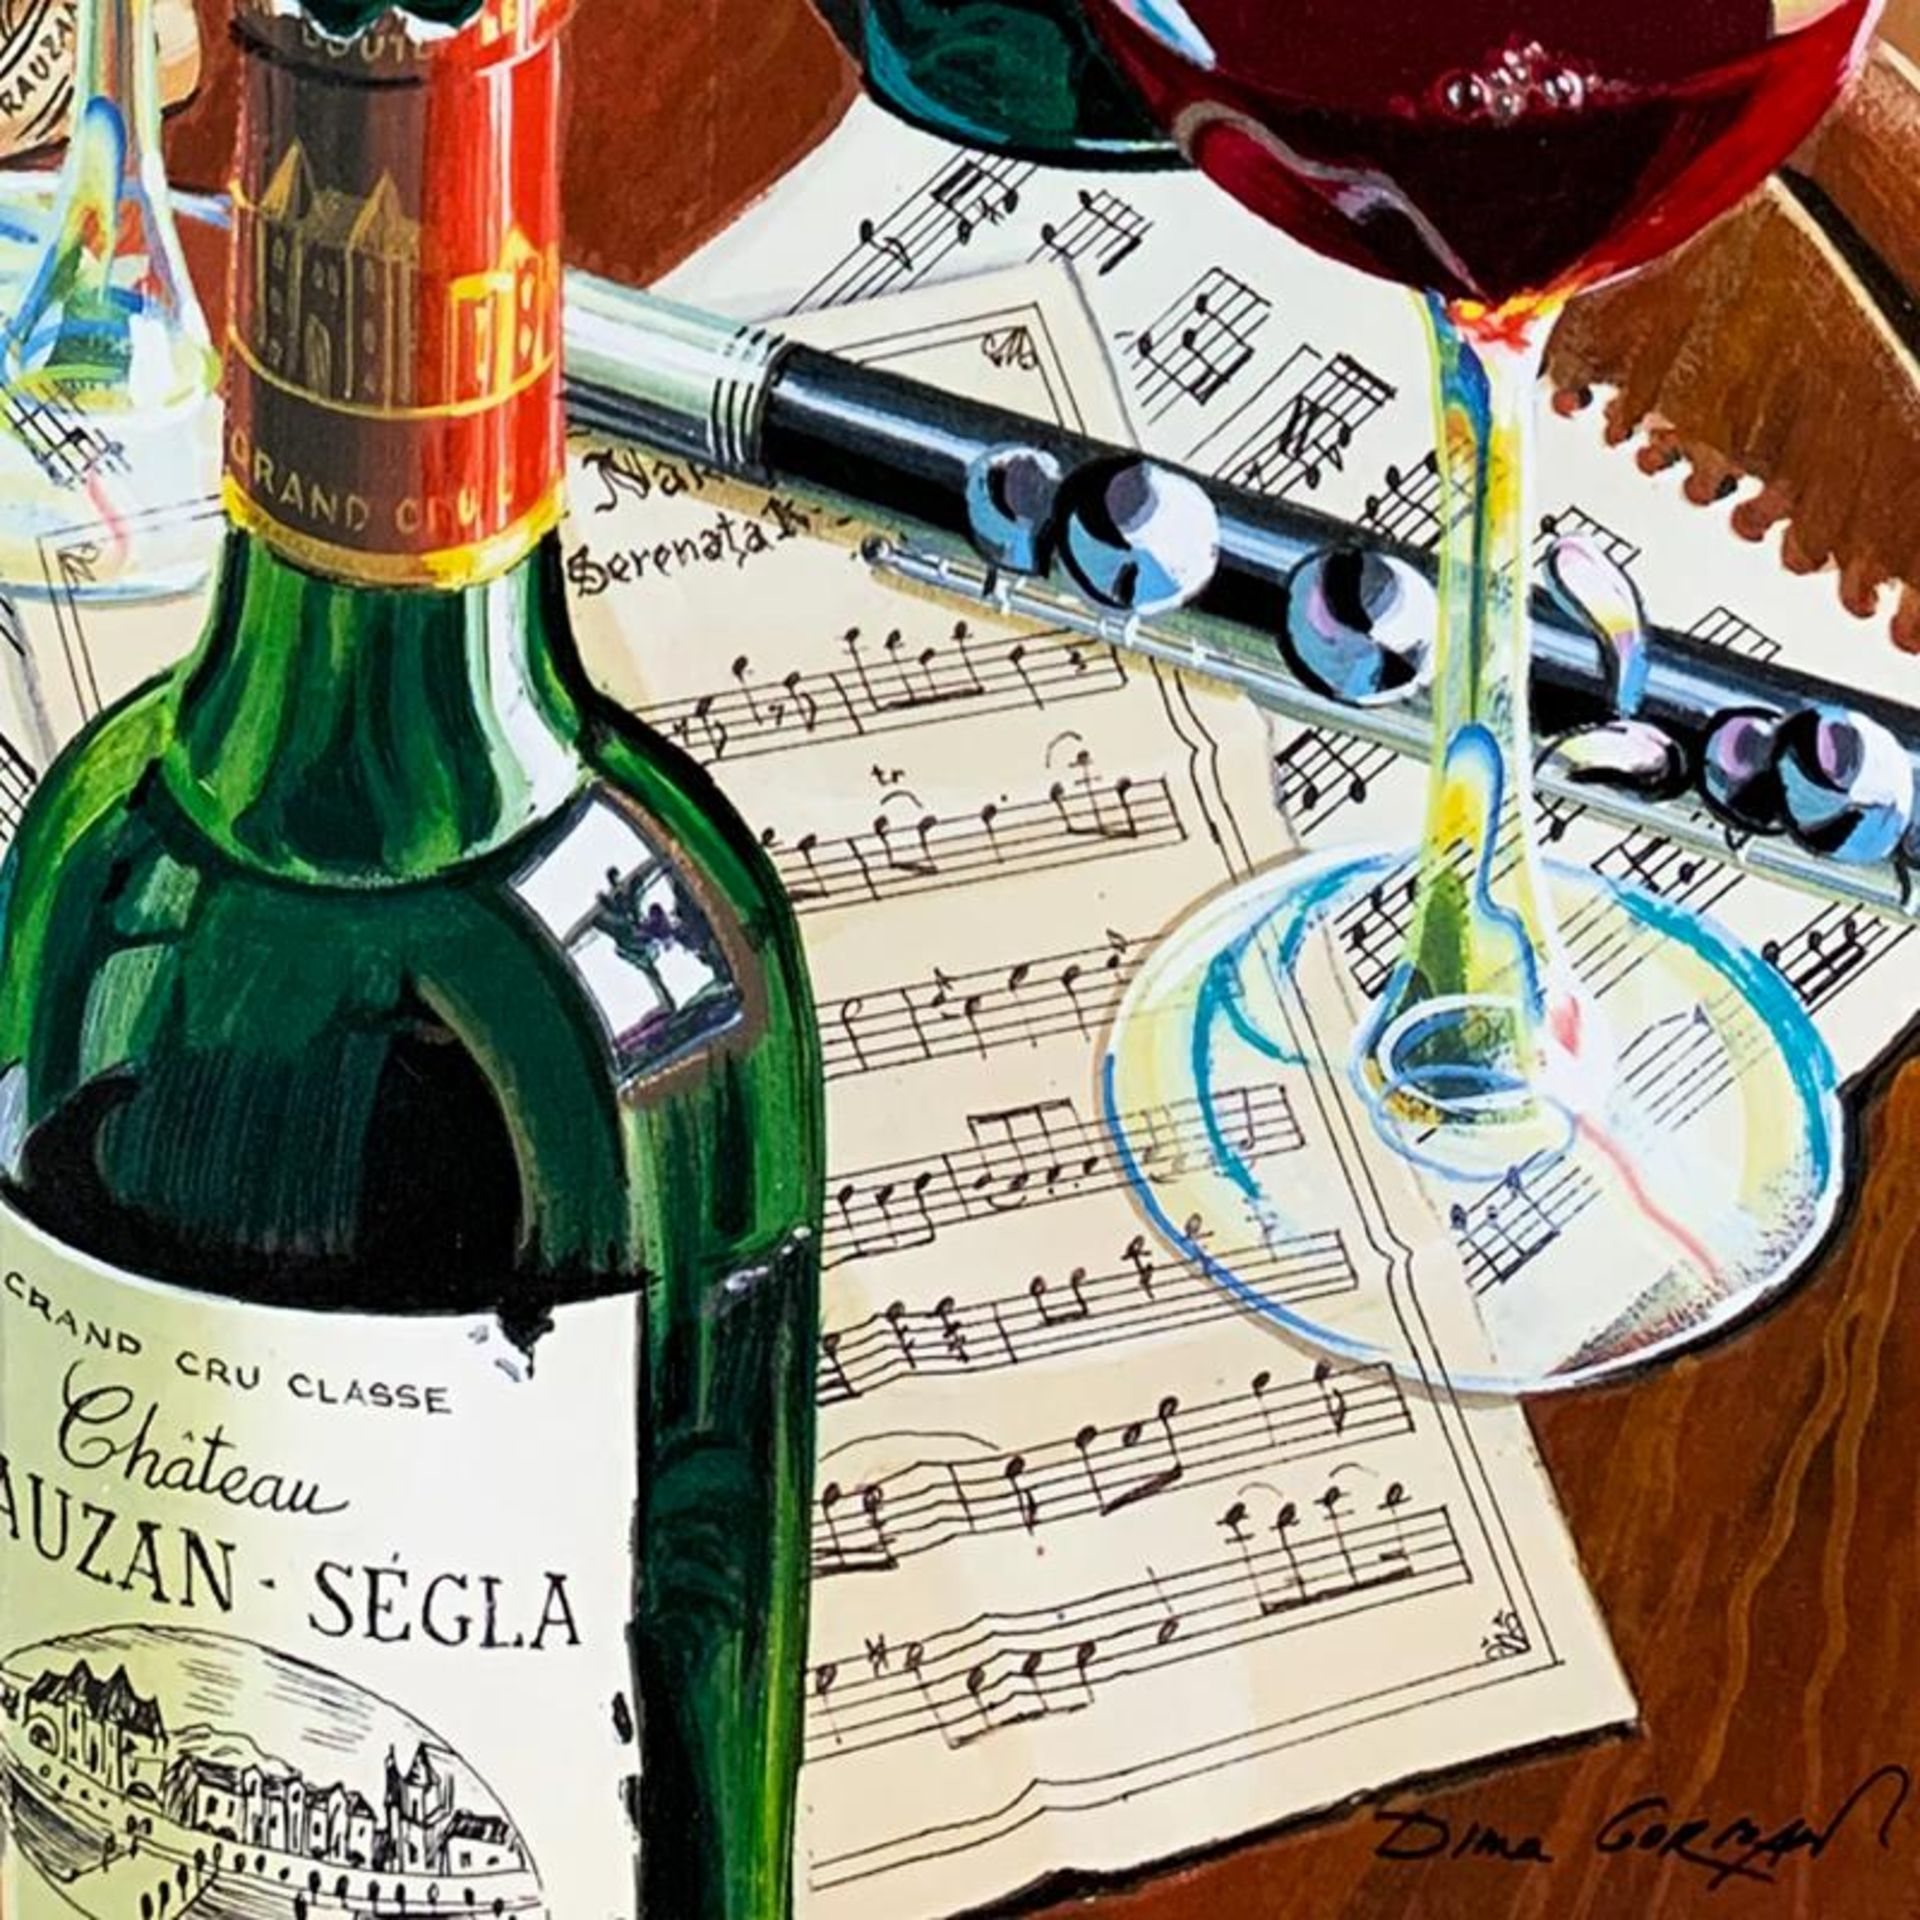 Merry Music by Gorban, Dima - Image 2 of 2